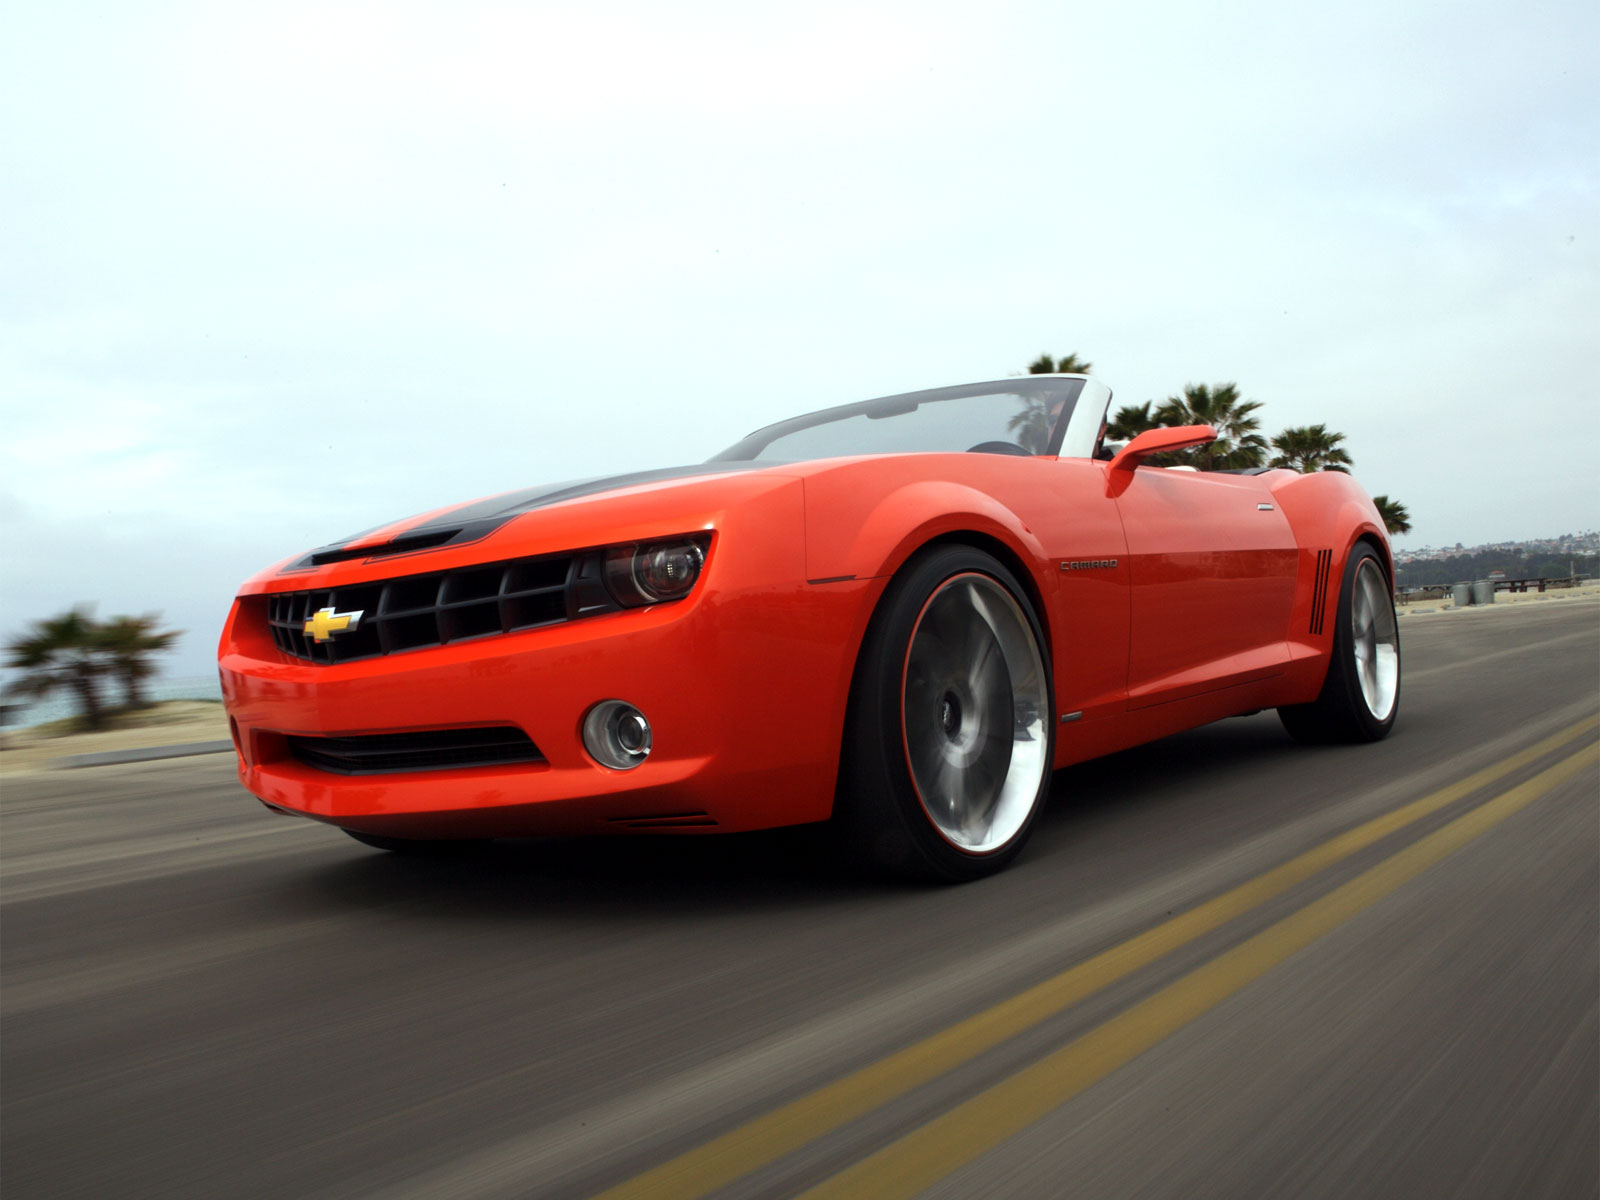 2018 Chevrolet Camaro Convertible Concept photo - 1